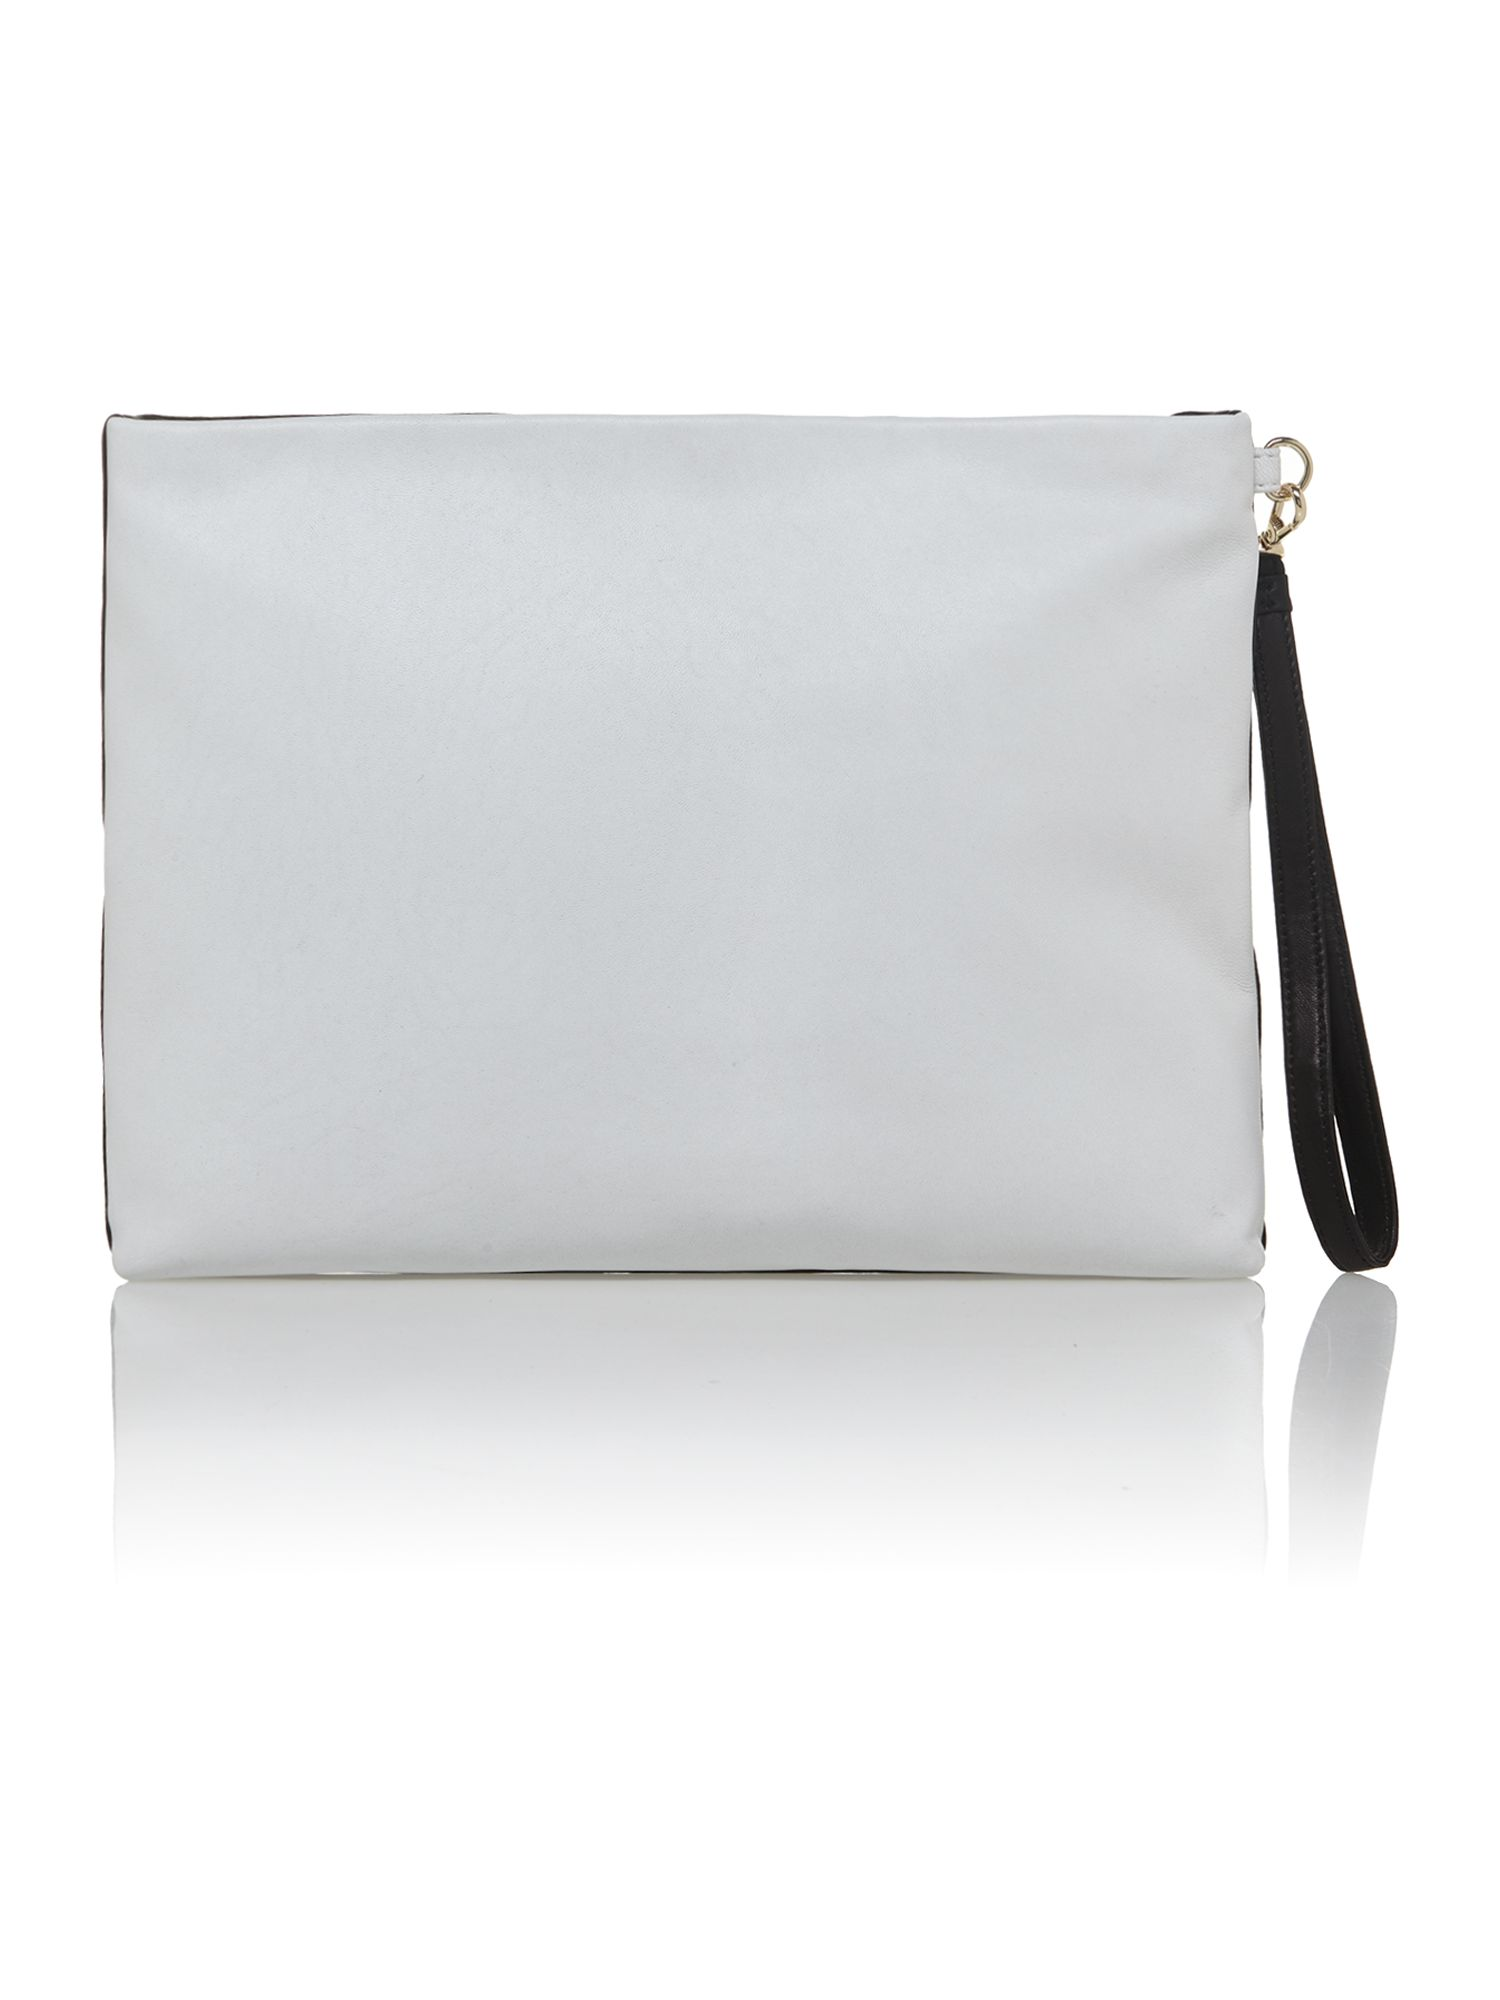 Gansevoort multi-coloured clutch bag